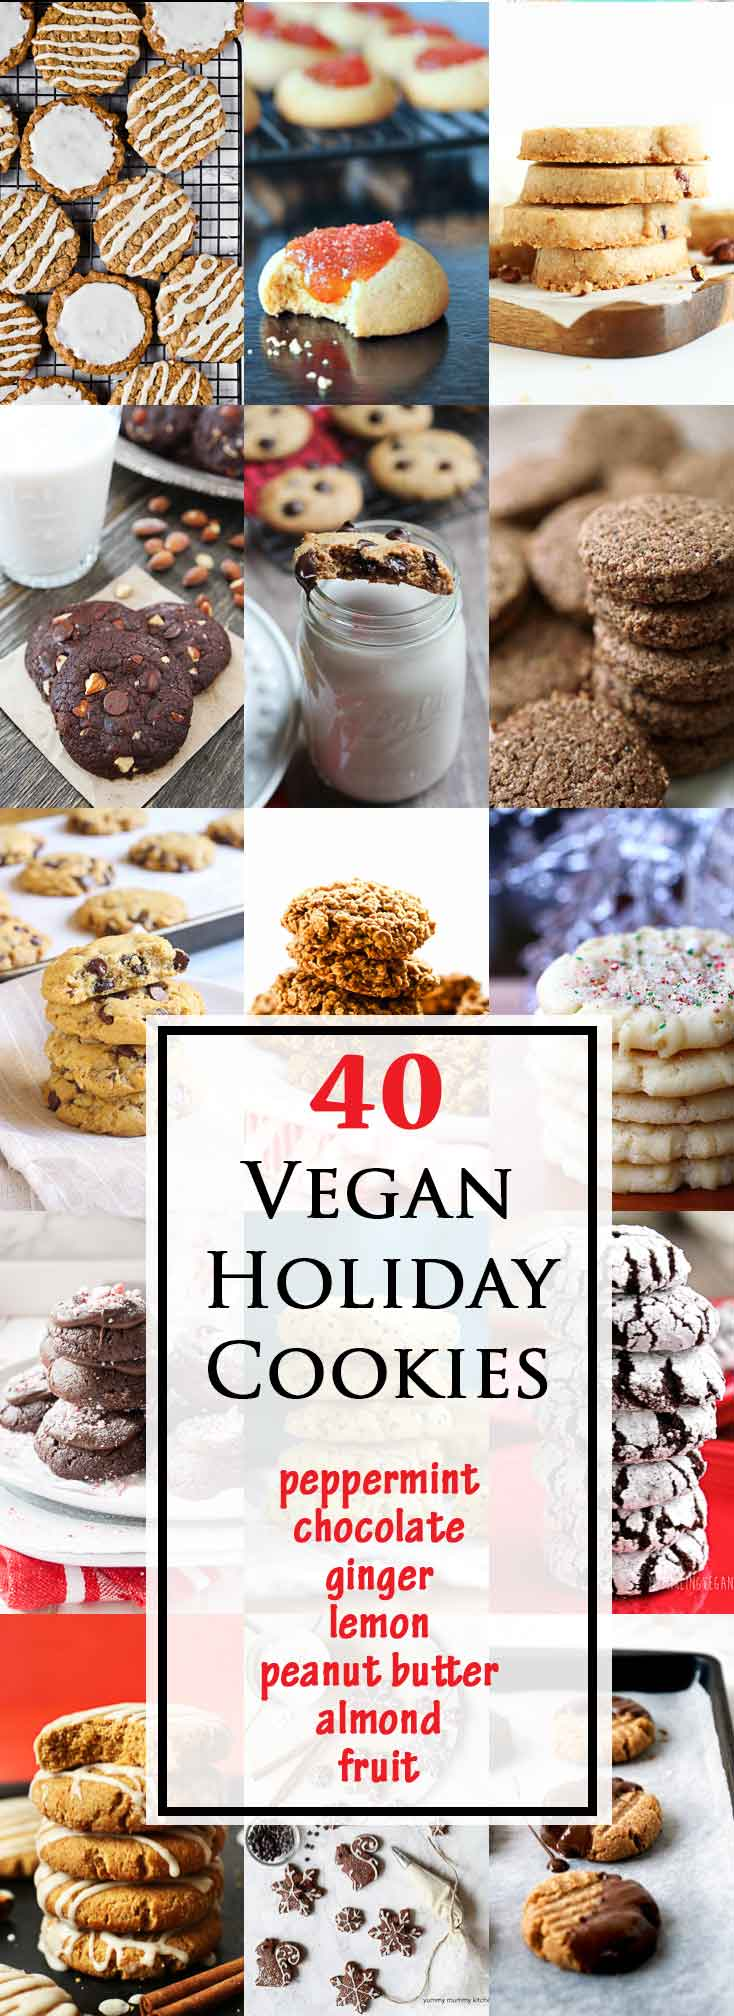 40 Best Vegan Cookies for the Holidays #vegan #glutenfree | Vegetarian Gastronomy | www.Vegetariangastronomy.com